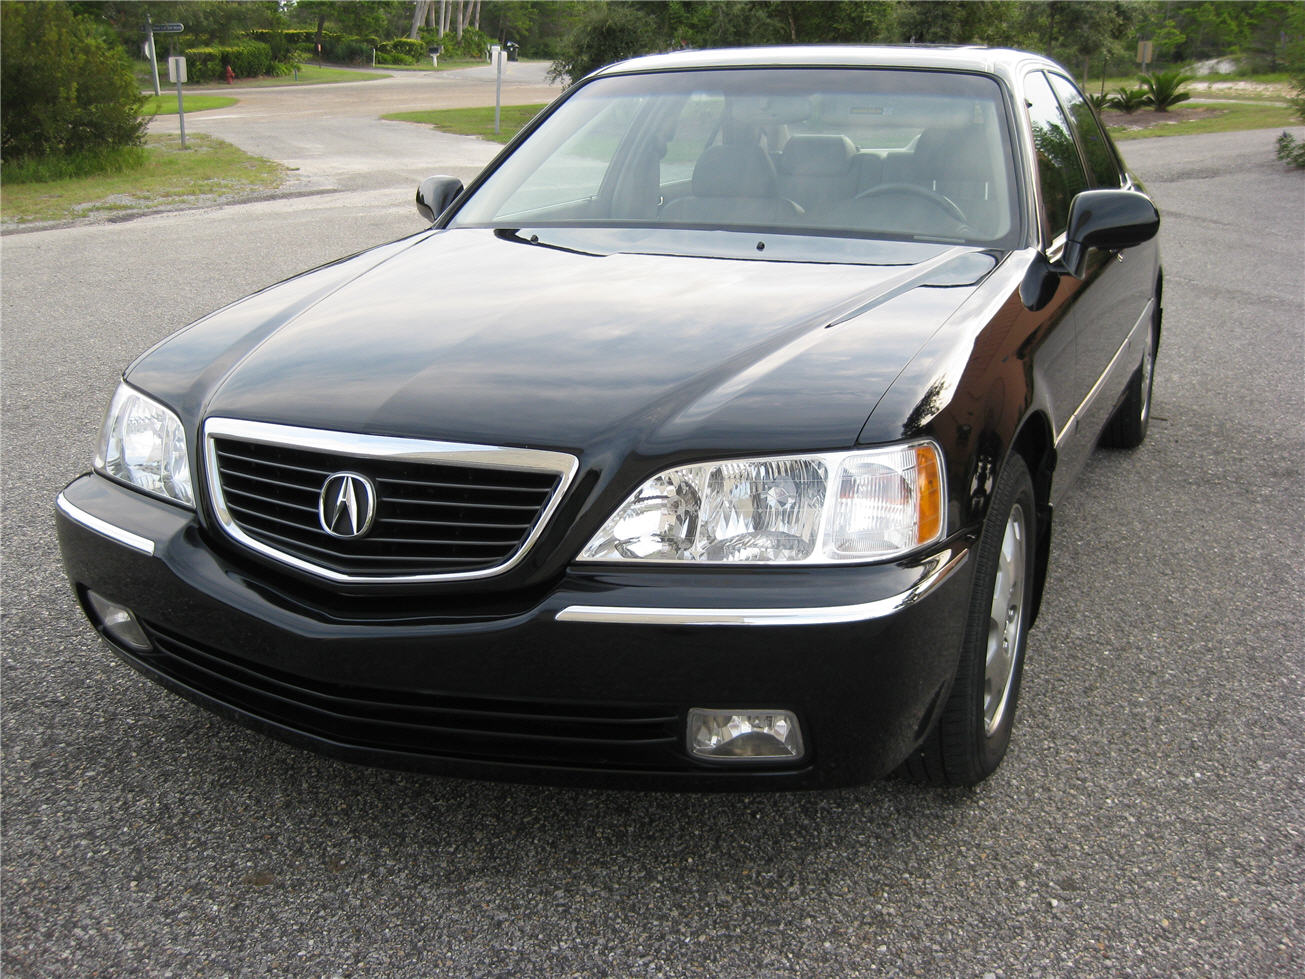 Acura rl 2004 photo - 2